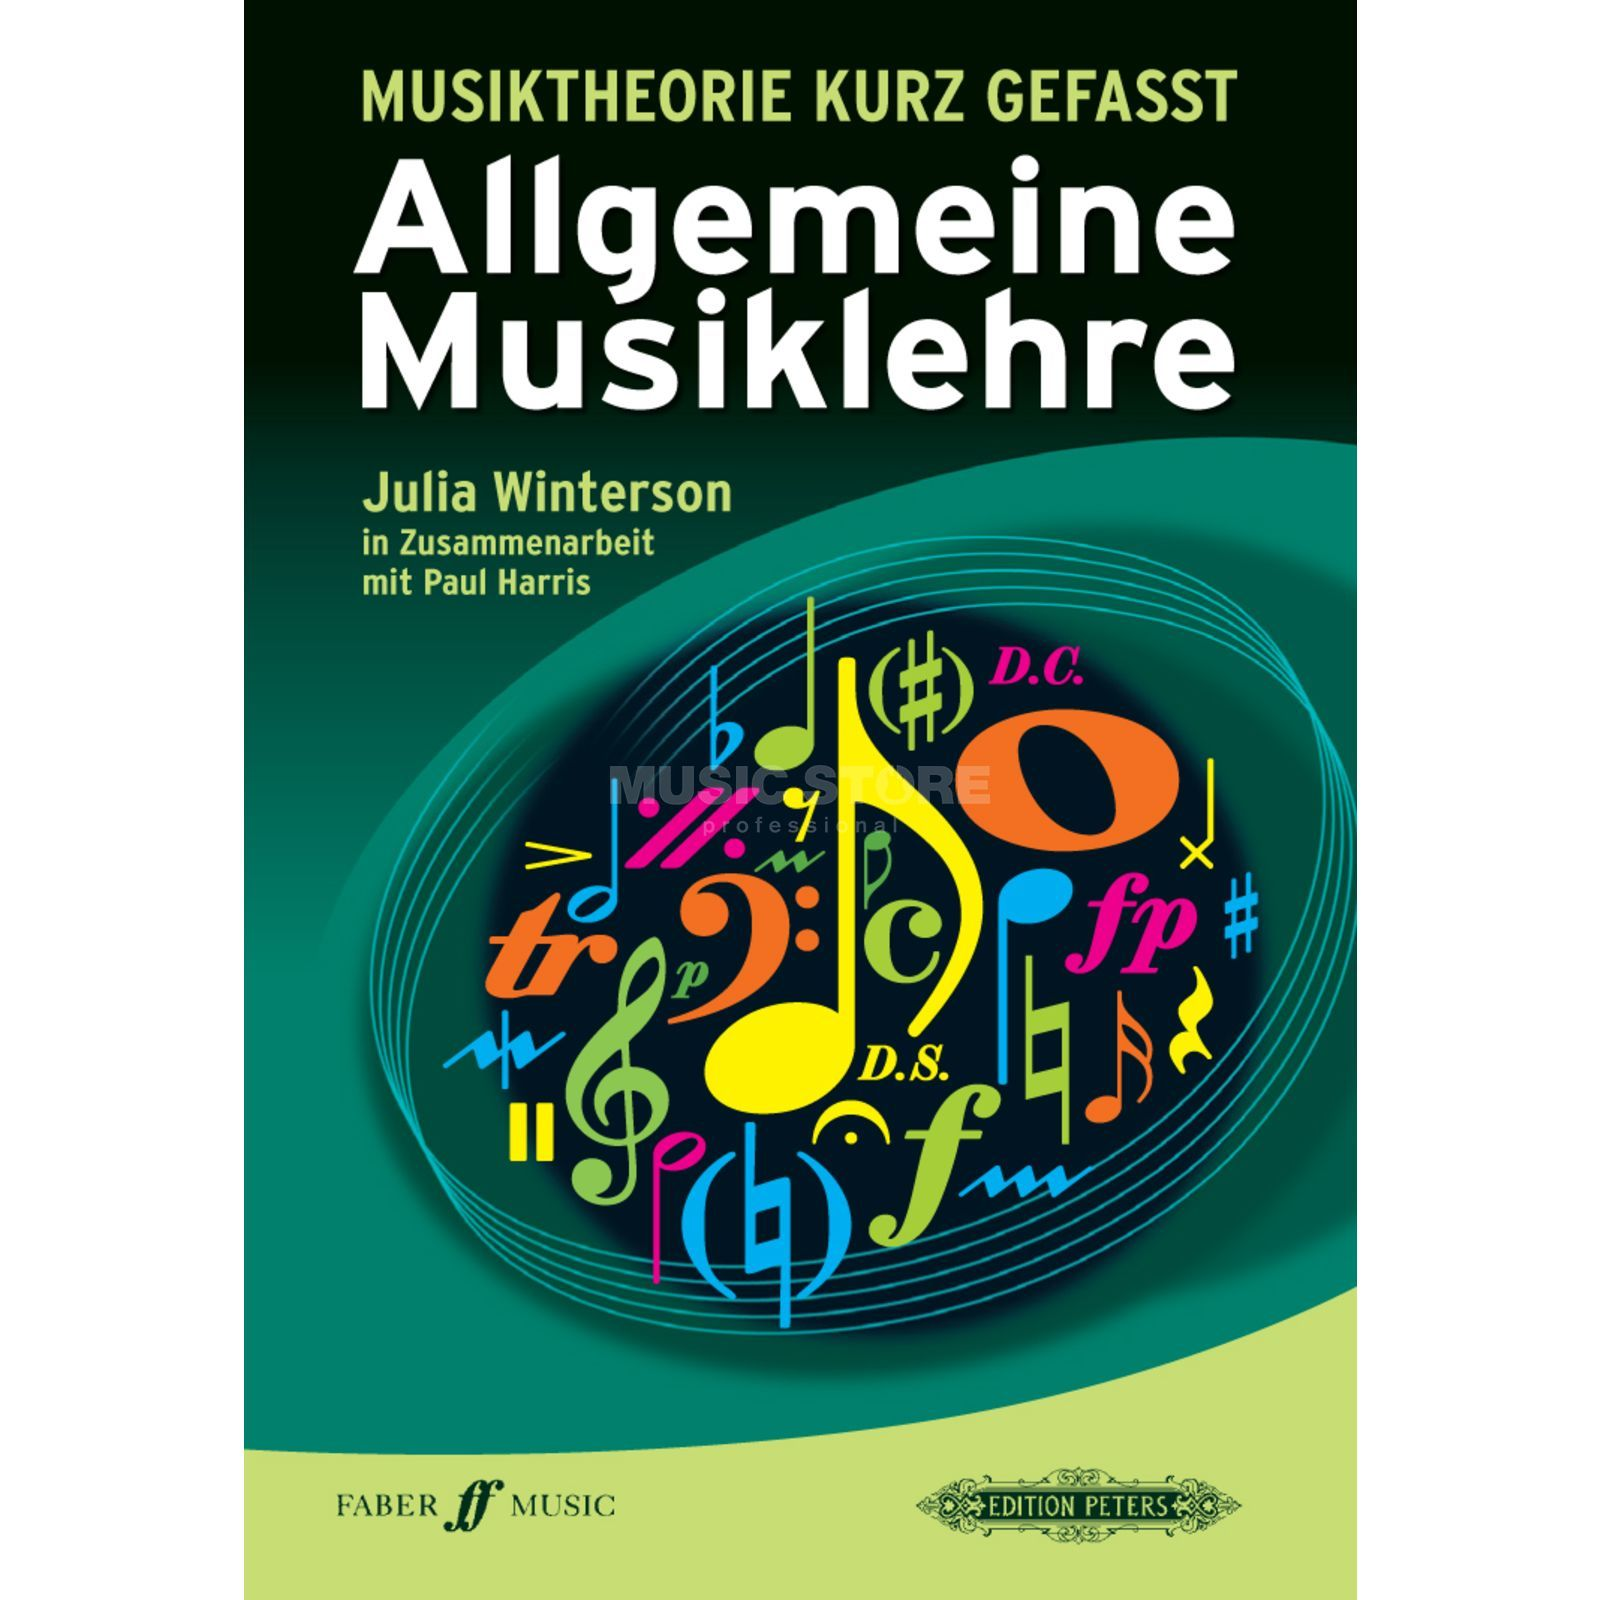 Faber Music Allgemeine Musiklehre Paul Harris, Julia Winterson Product Image